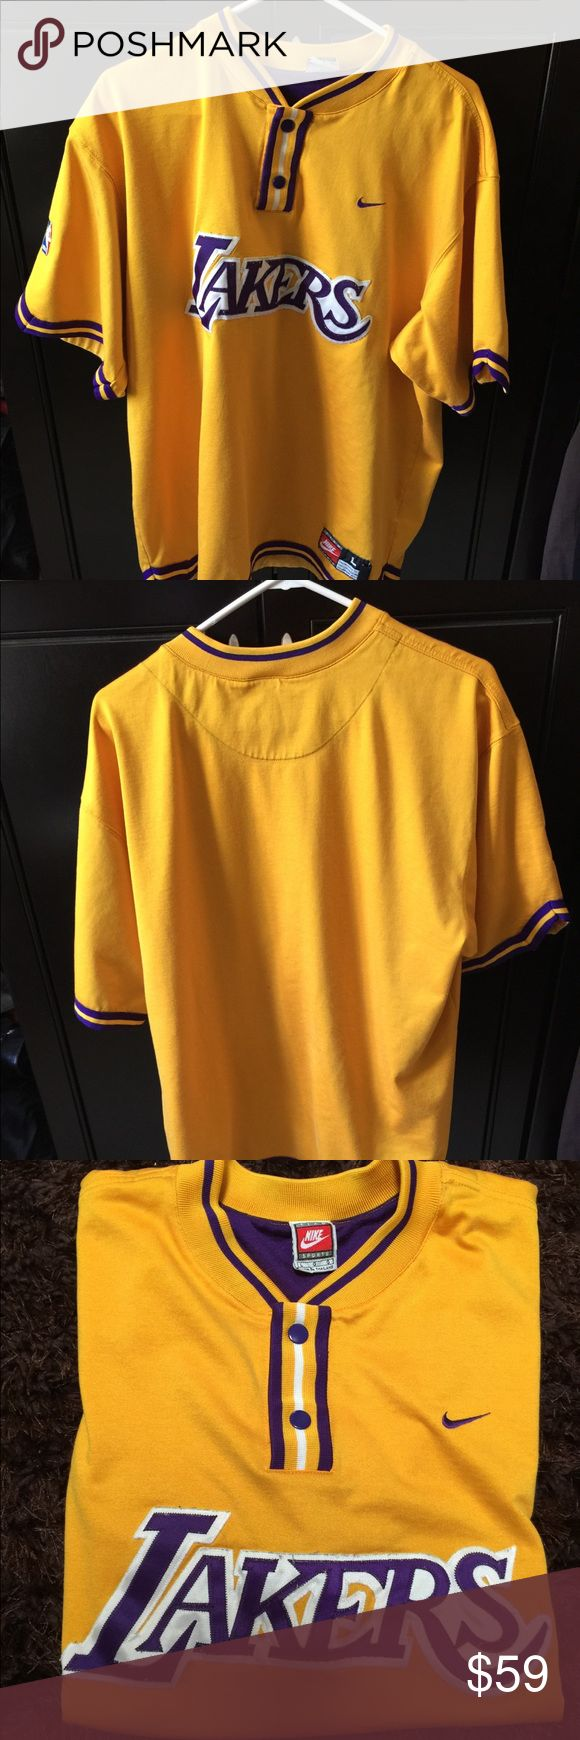 Nike Sport Lakers Shirt size L Used but great condition yellow Nike Lakers Shirt. Nike Other